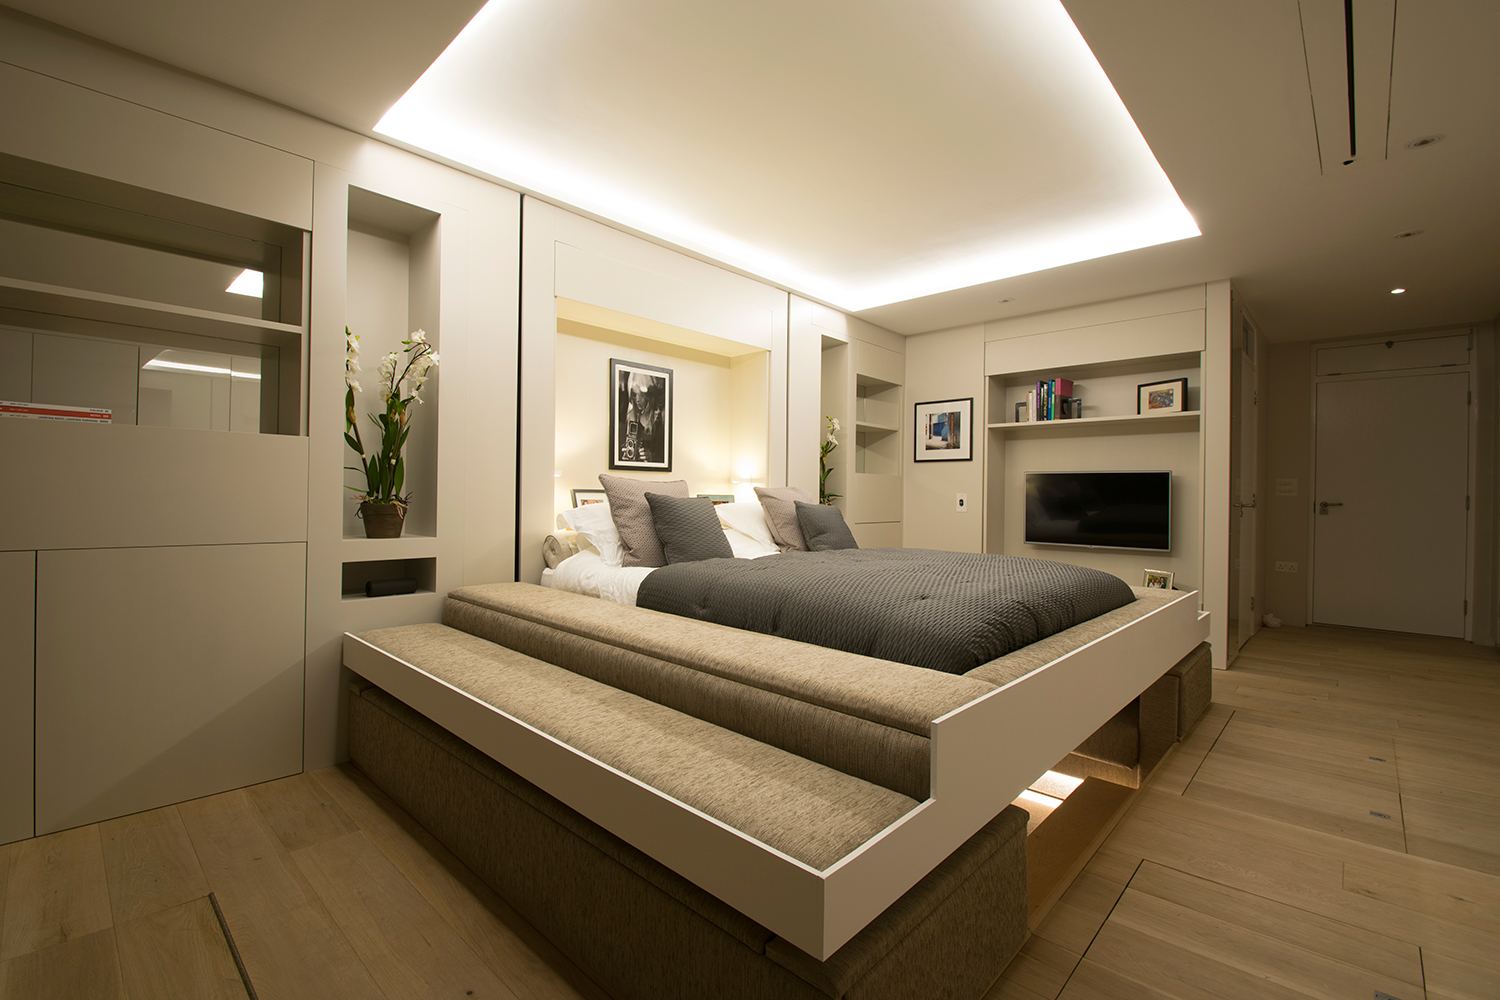 Modular Studio Apartment With Elevator Bed And